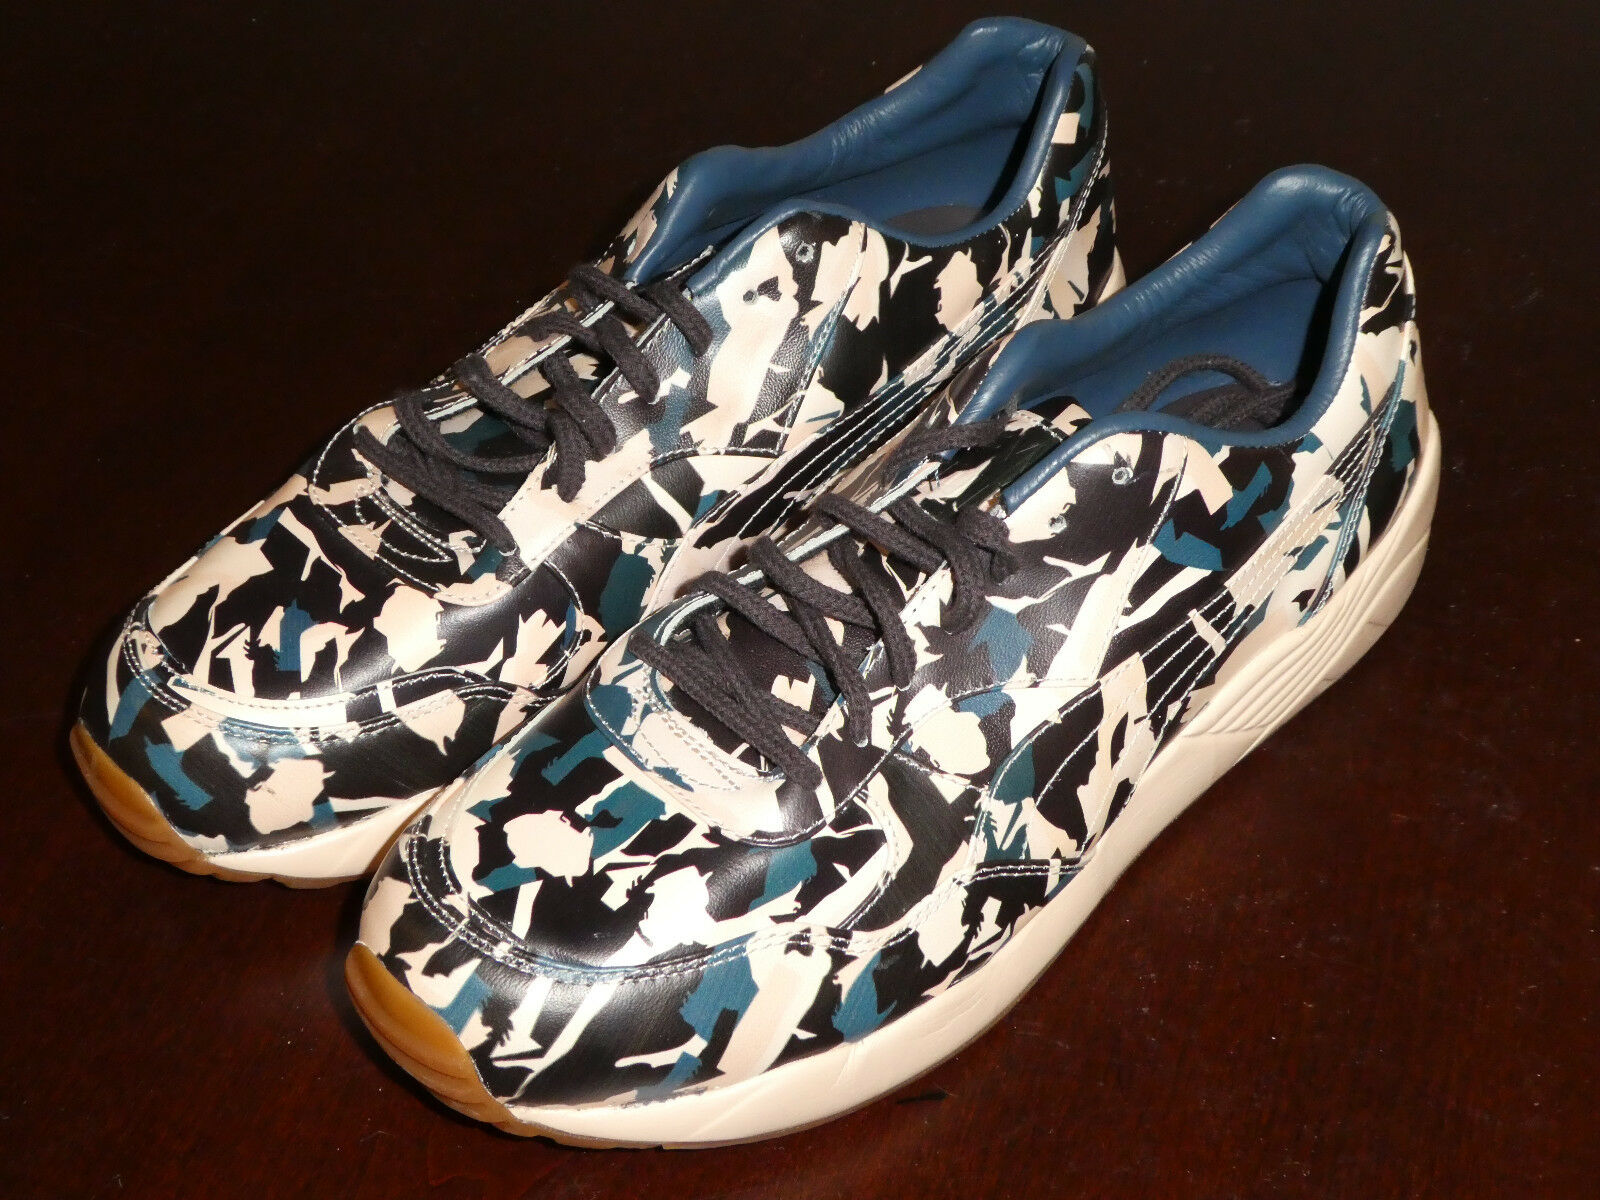 Puma XS 698 BWGH shoes mens new sneakers 357379 01 camo